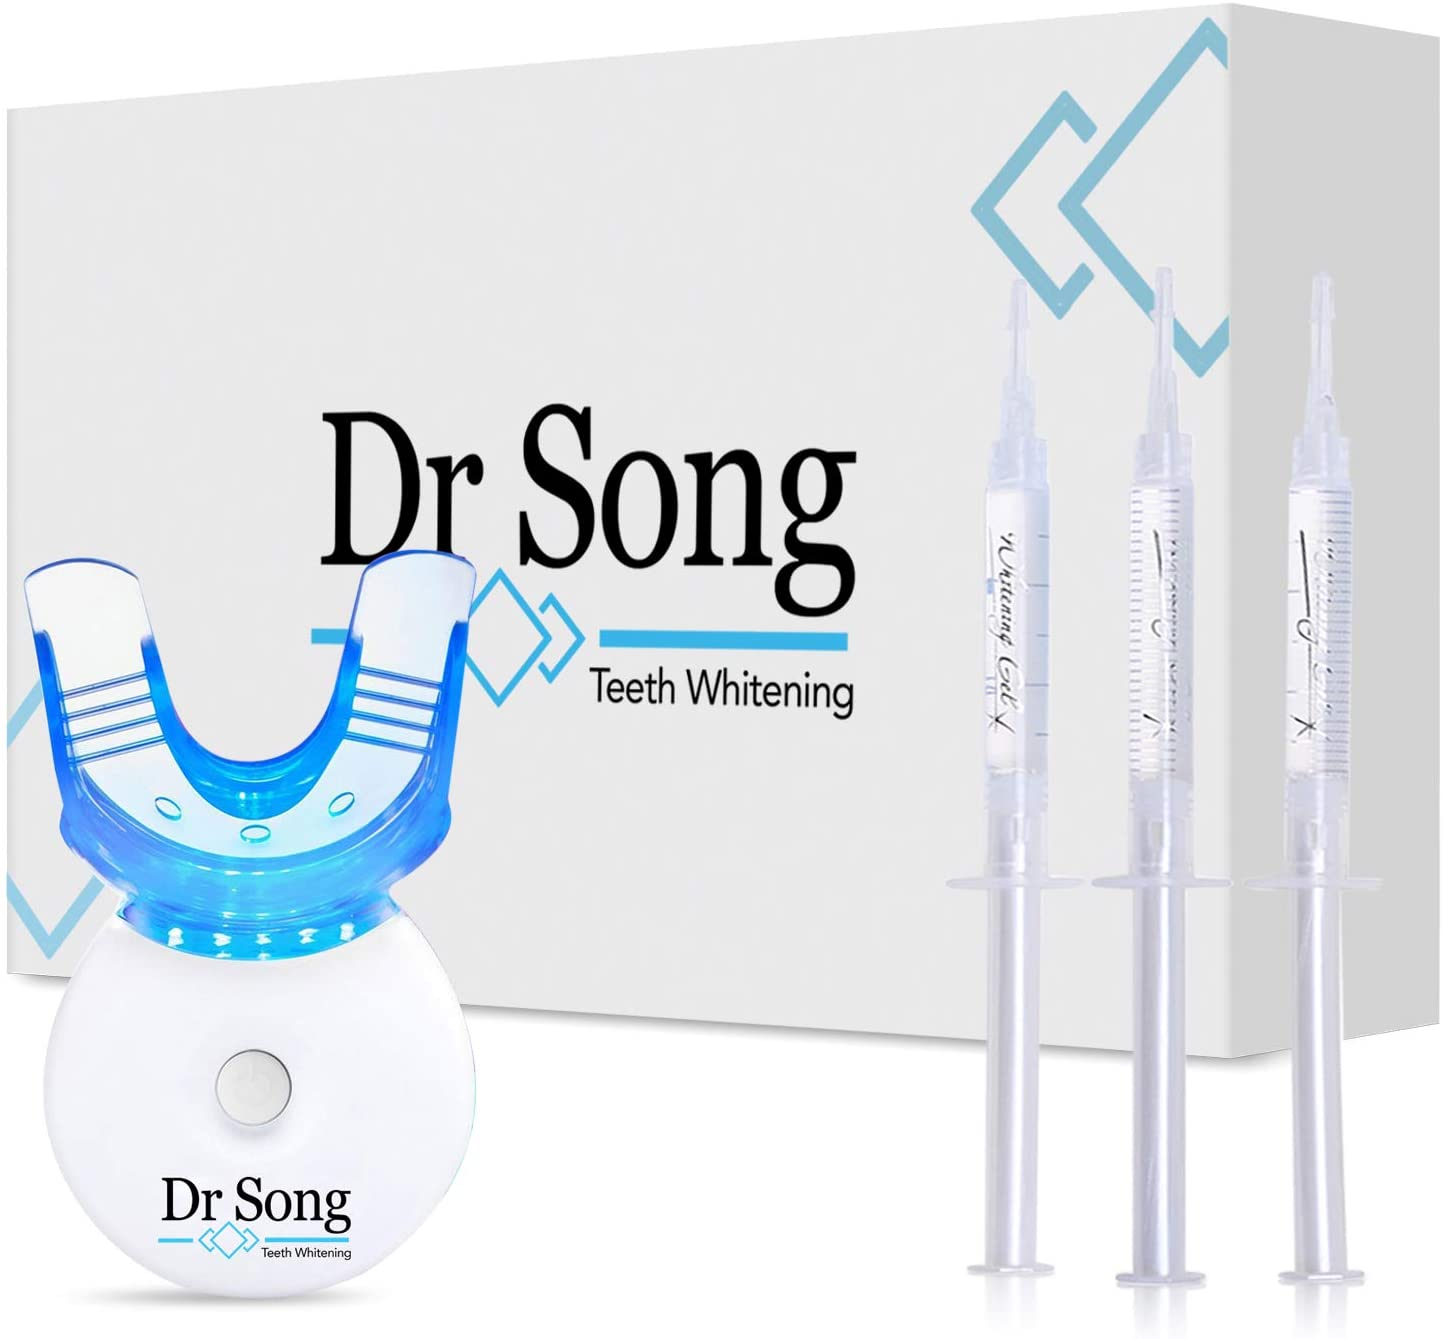 Dr Song Teeth